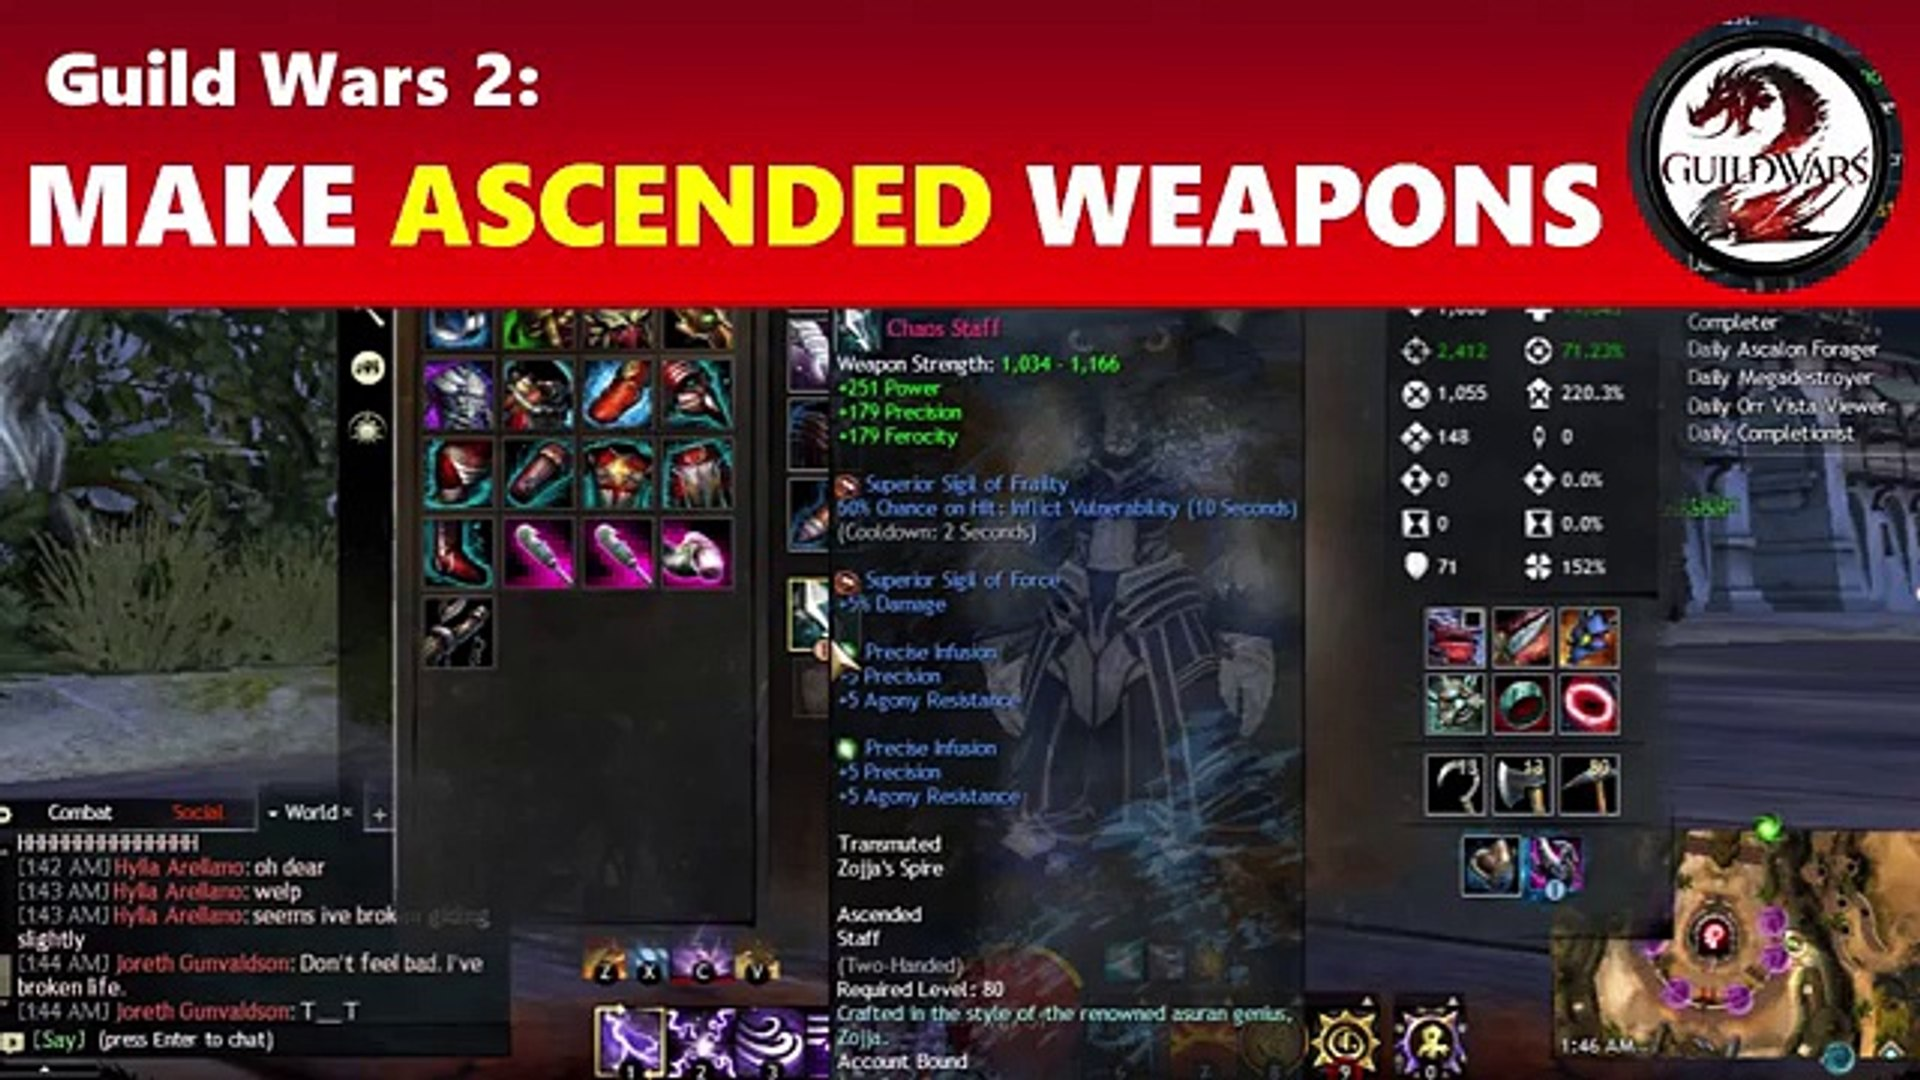 Guild Wars 2: Making Ascended Gear - Weapons